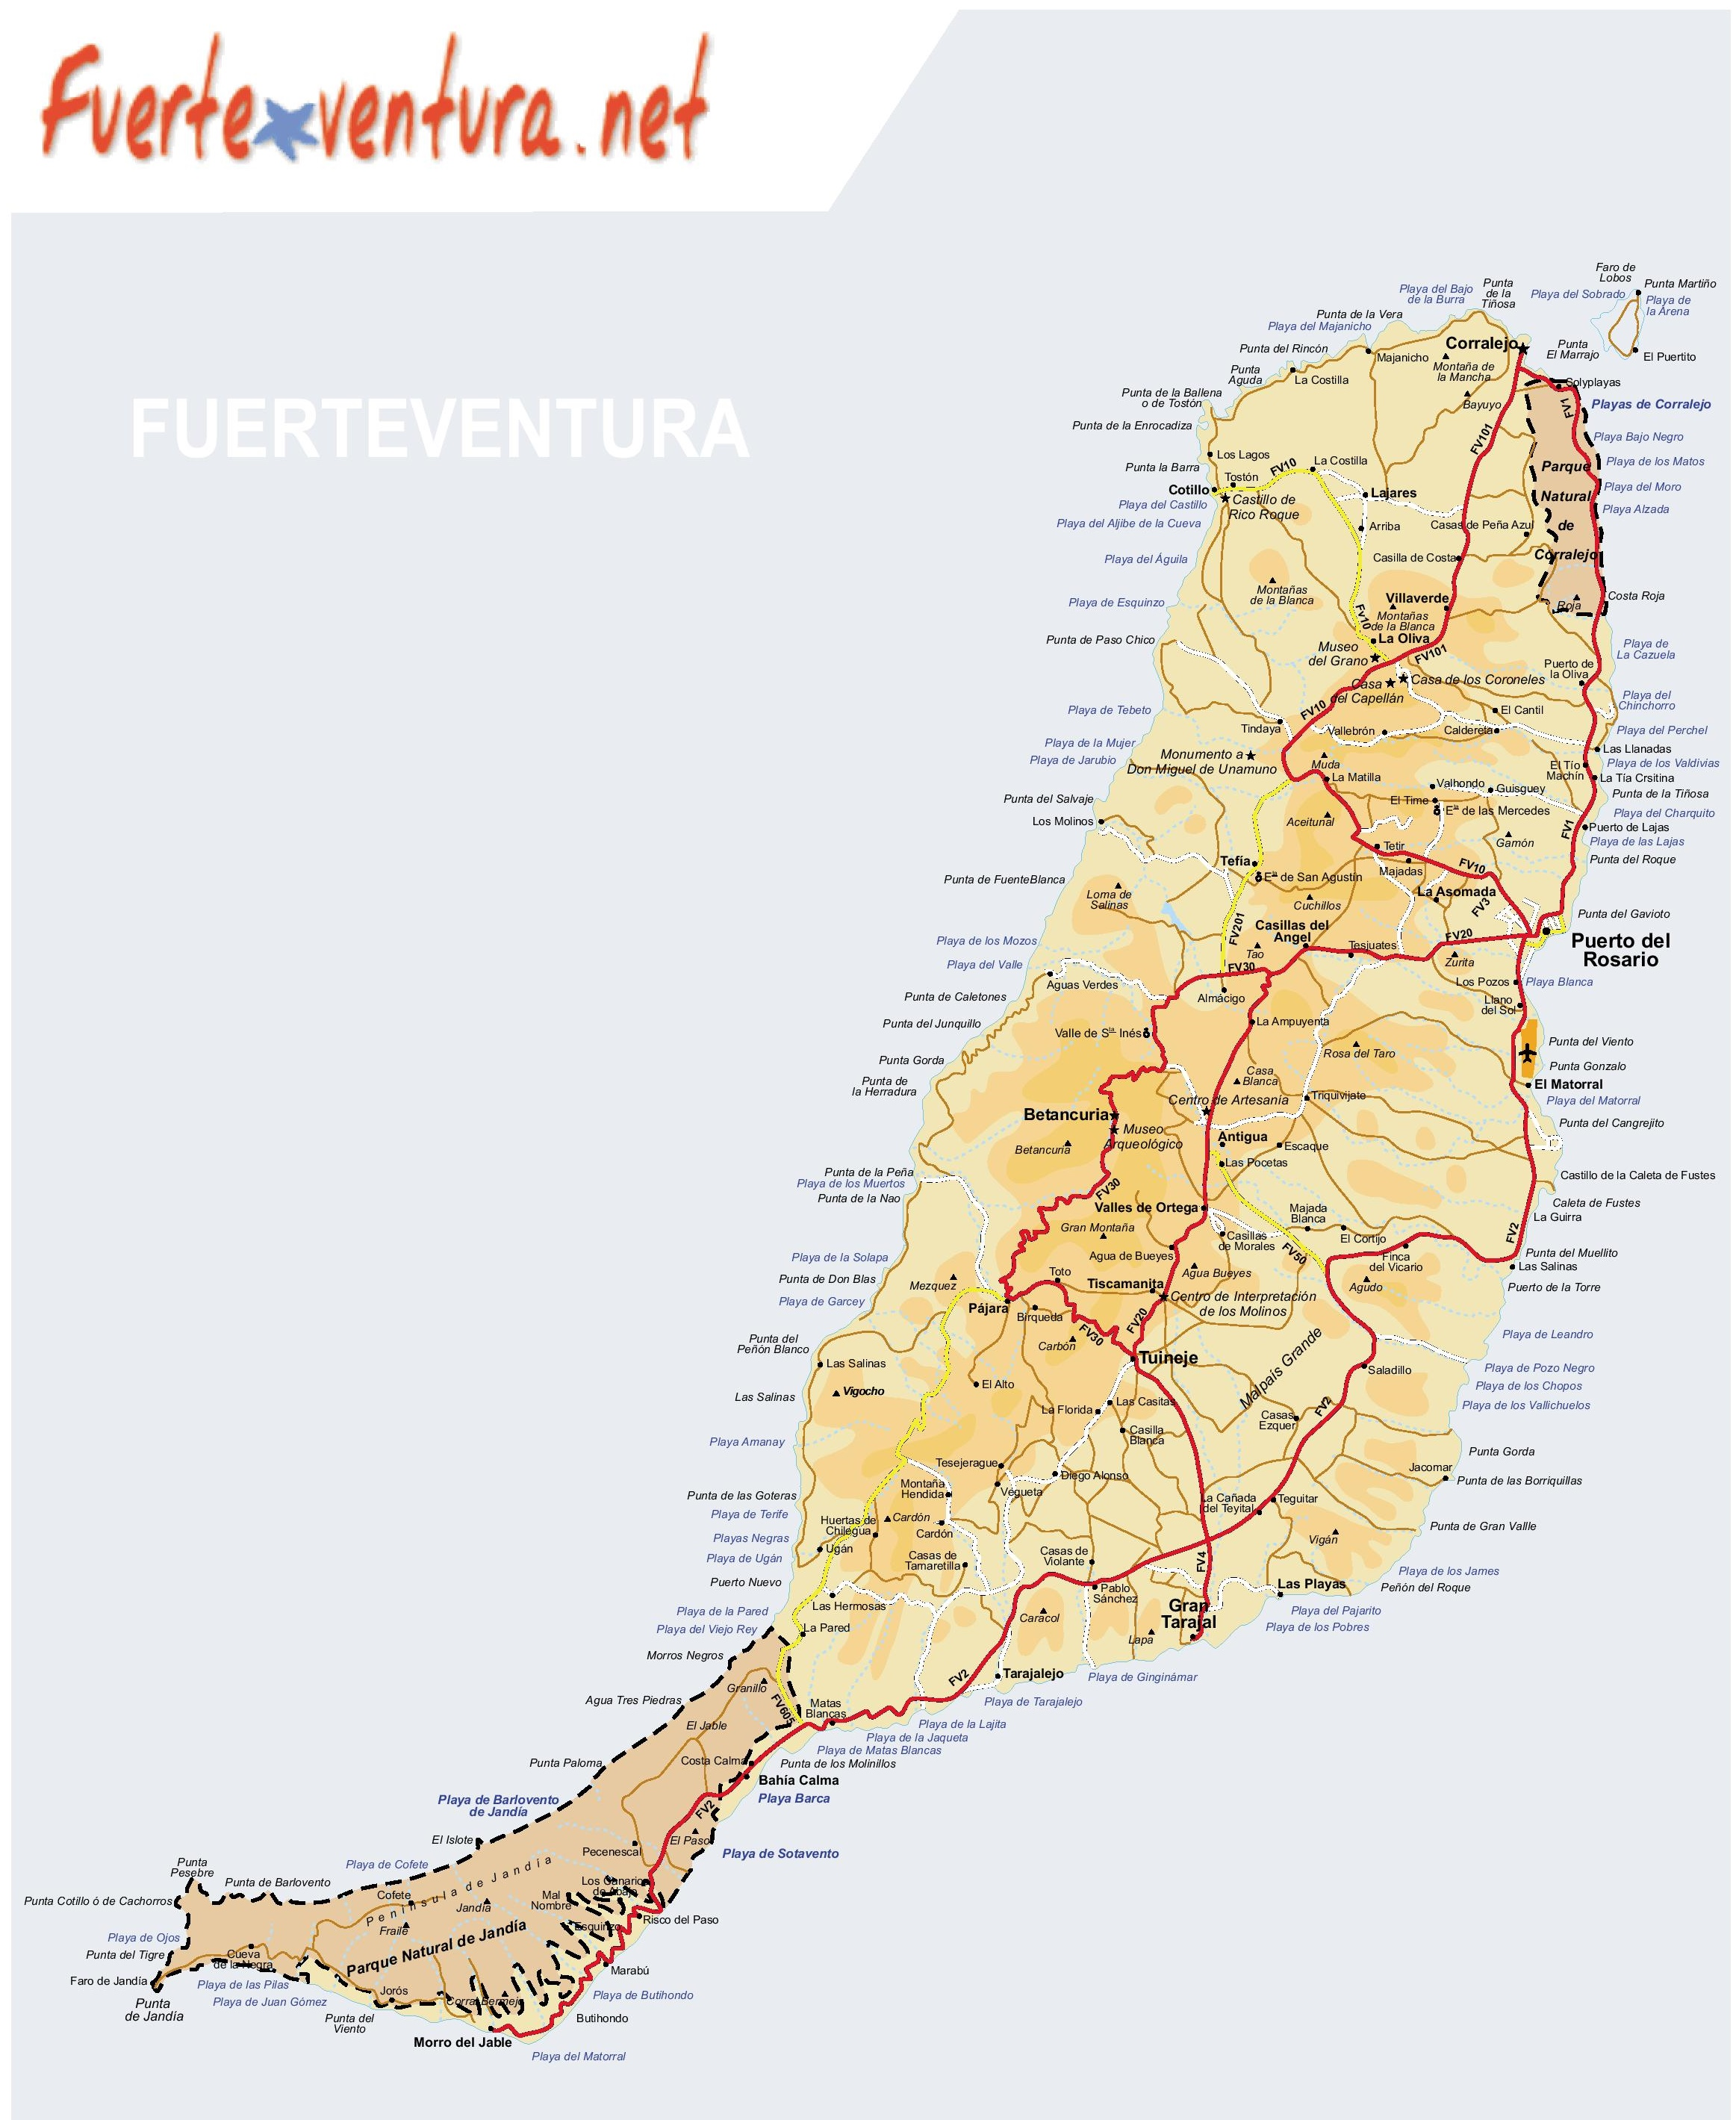 ibiza spain map with Large Detailed Map Of Fuerteventura With Beaches on Photo Gallery besides Tenerife moreover Tenerife together with Large Detailed Map Of Fuerteventura With Beaches in addition Italy.